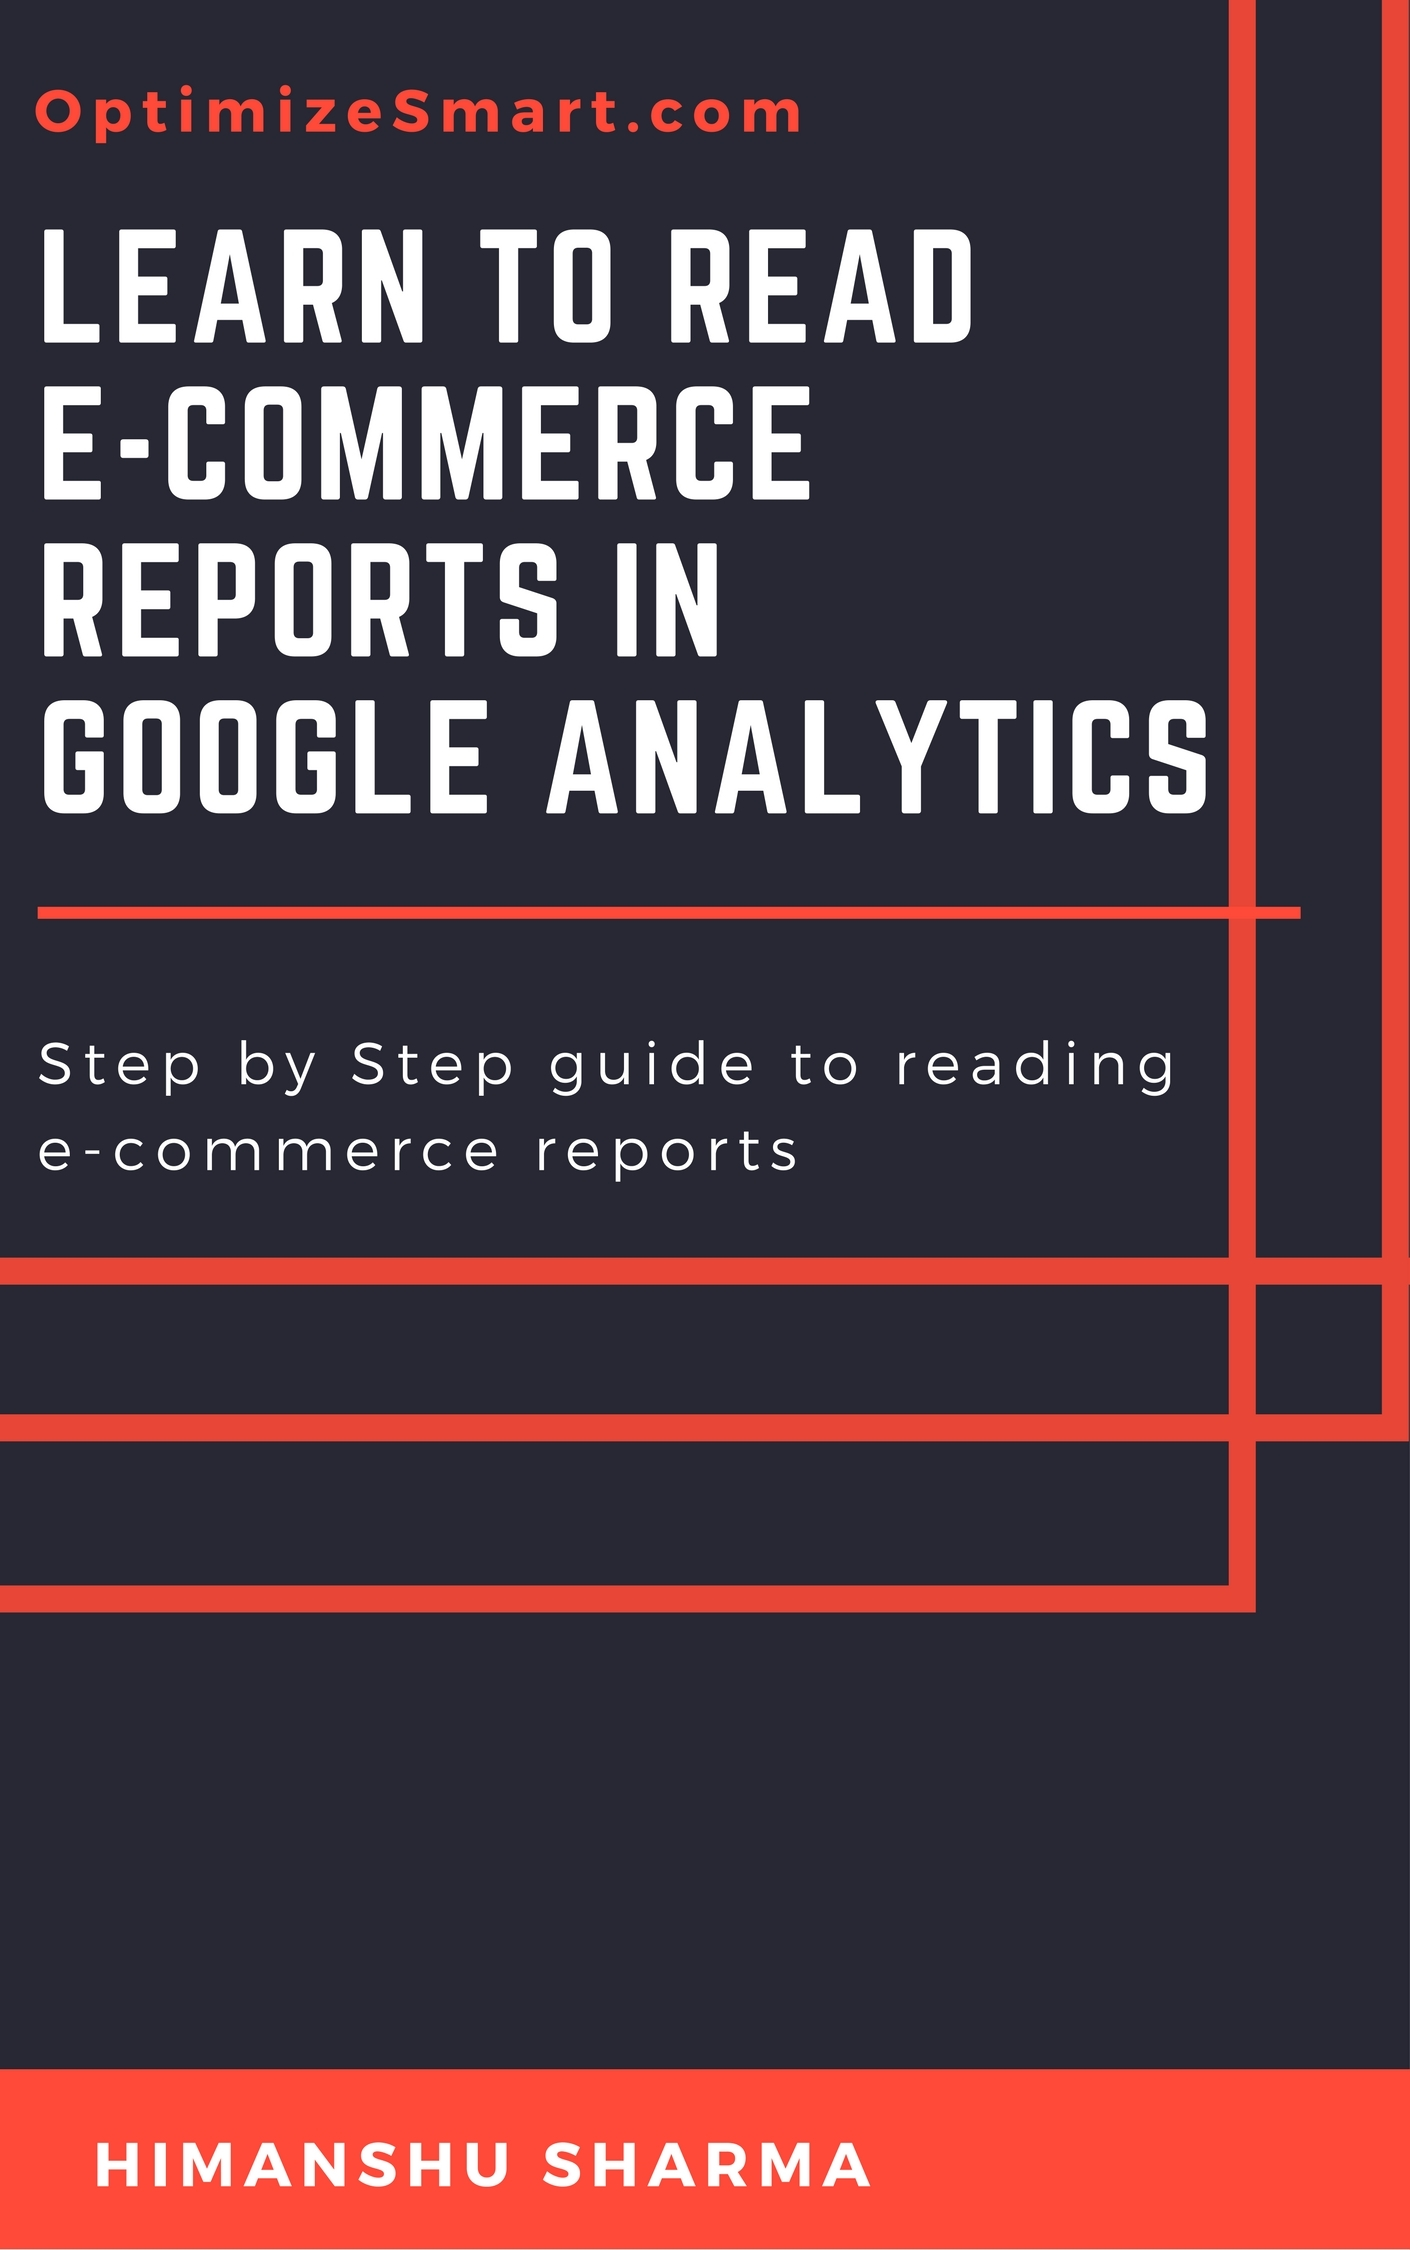 Learn to read E-Commerce Reports in Google Analytics